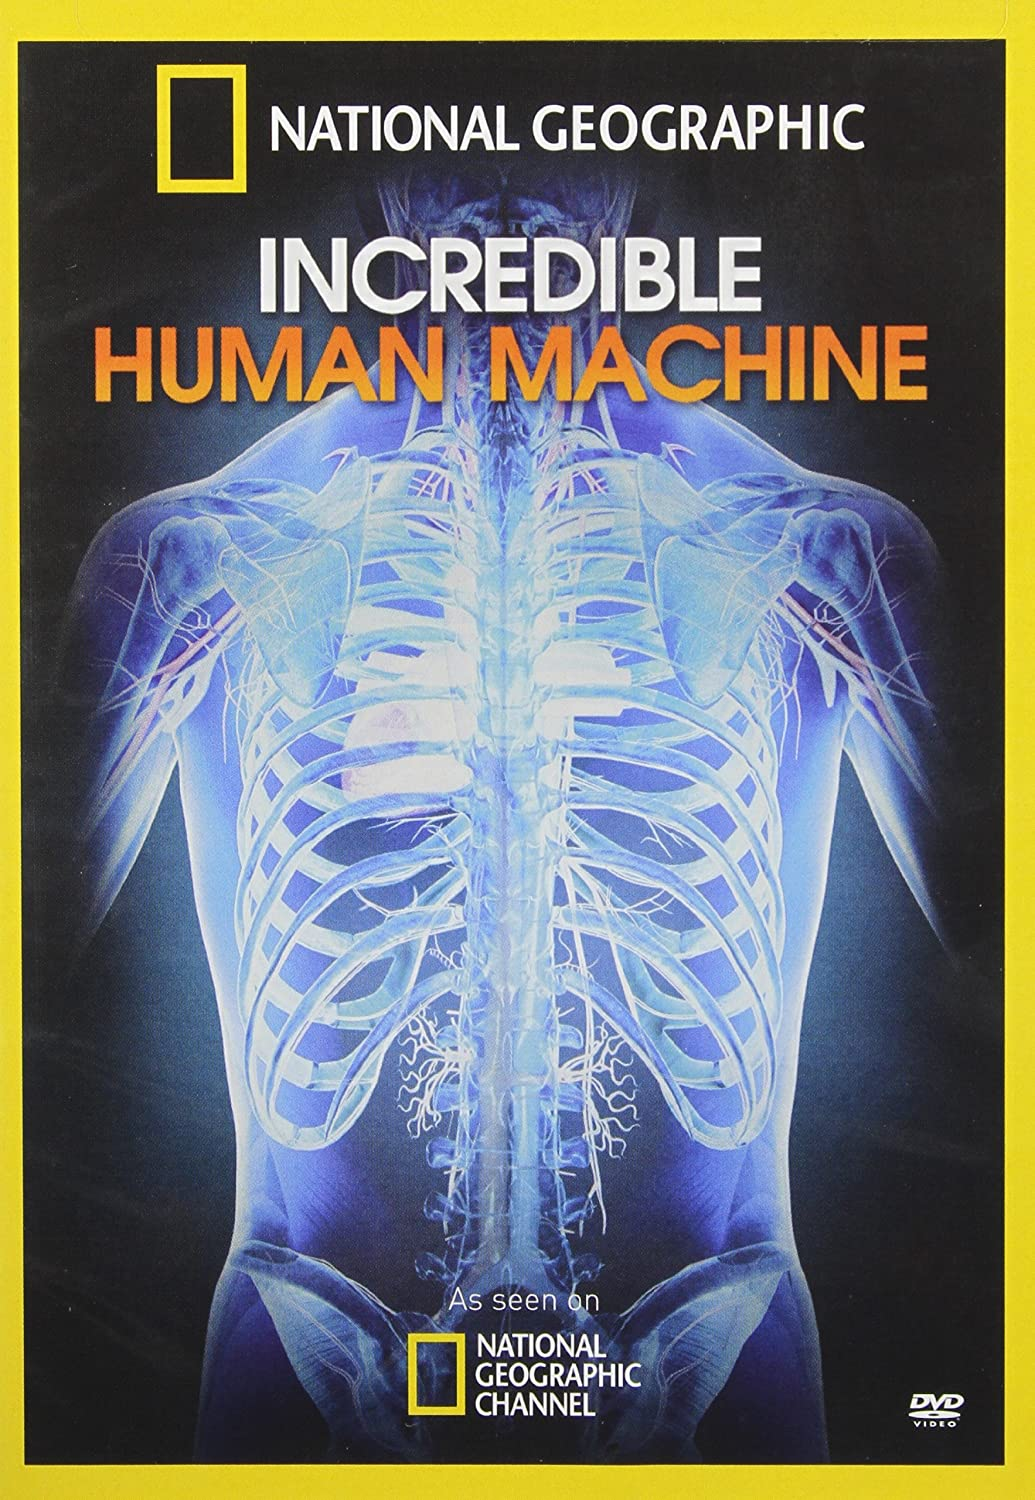 Amazon.com: Incredible Human Machine, The: National Geographic ...